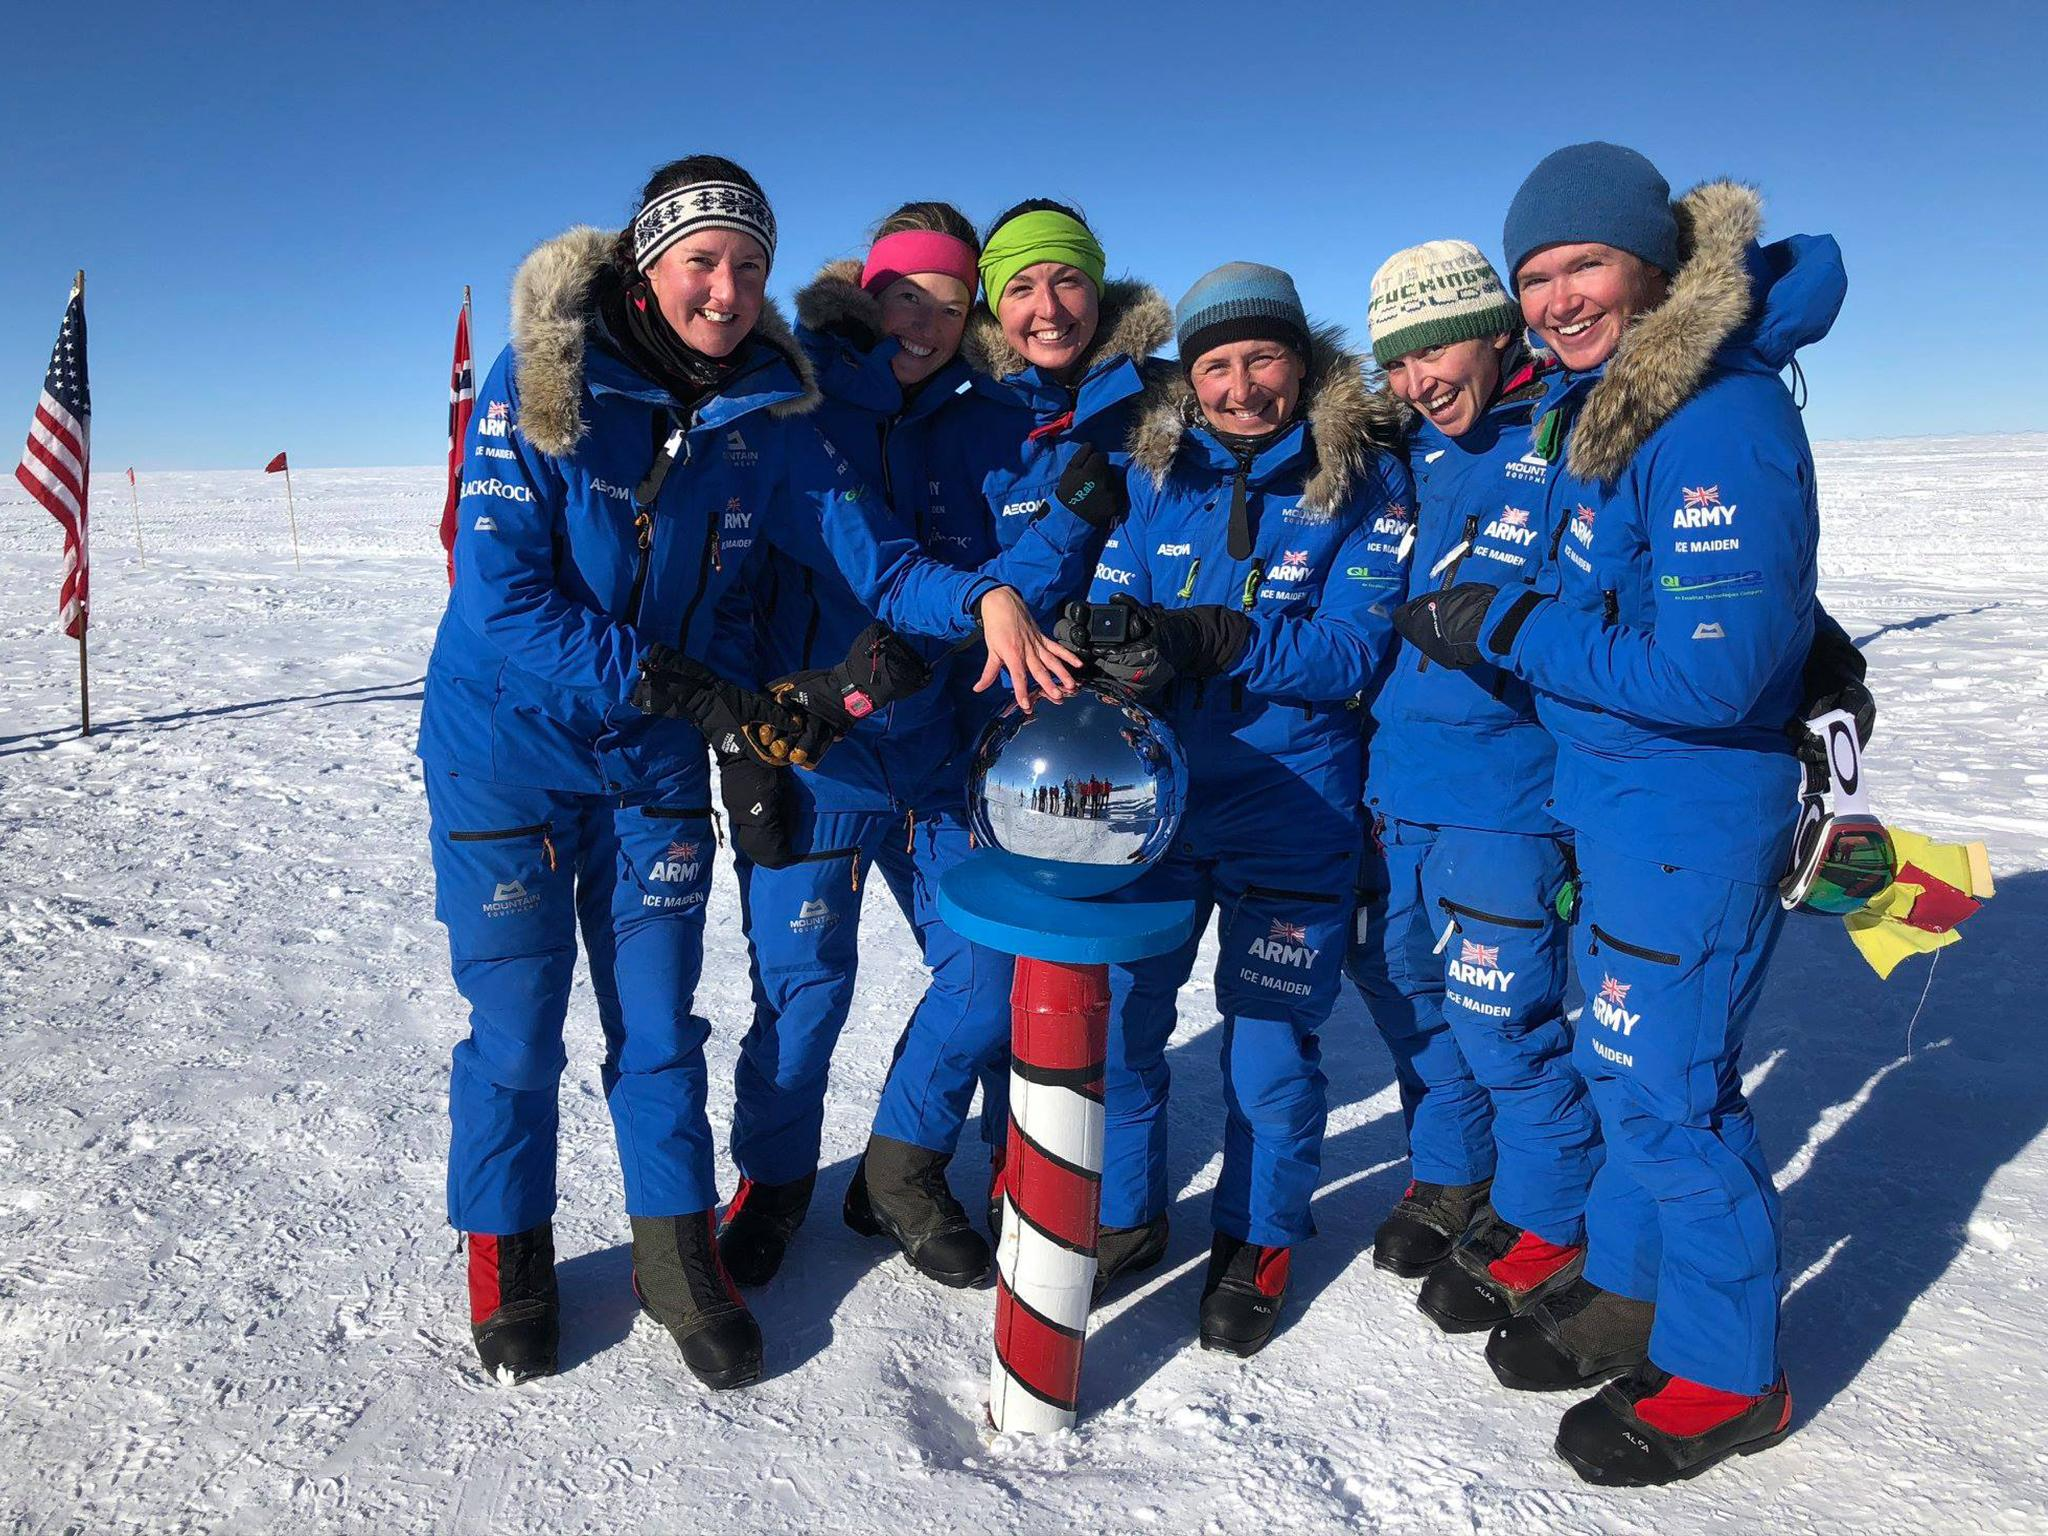 All-female team of British soldiers become first women's group to cross Antarctica using only muscle power